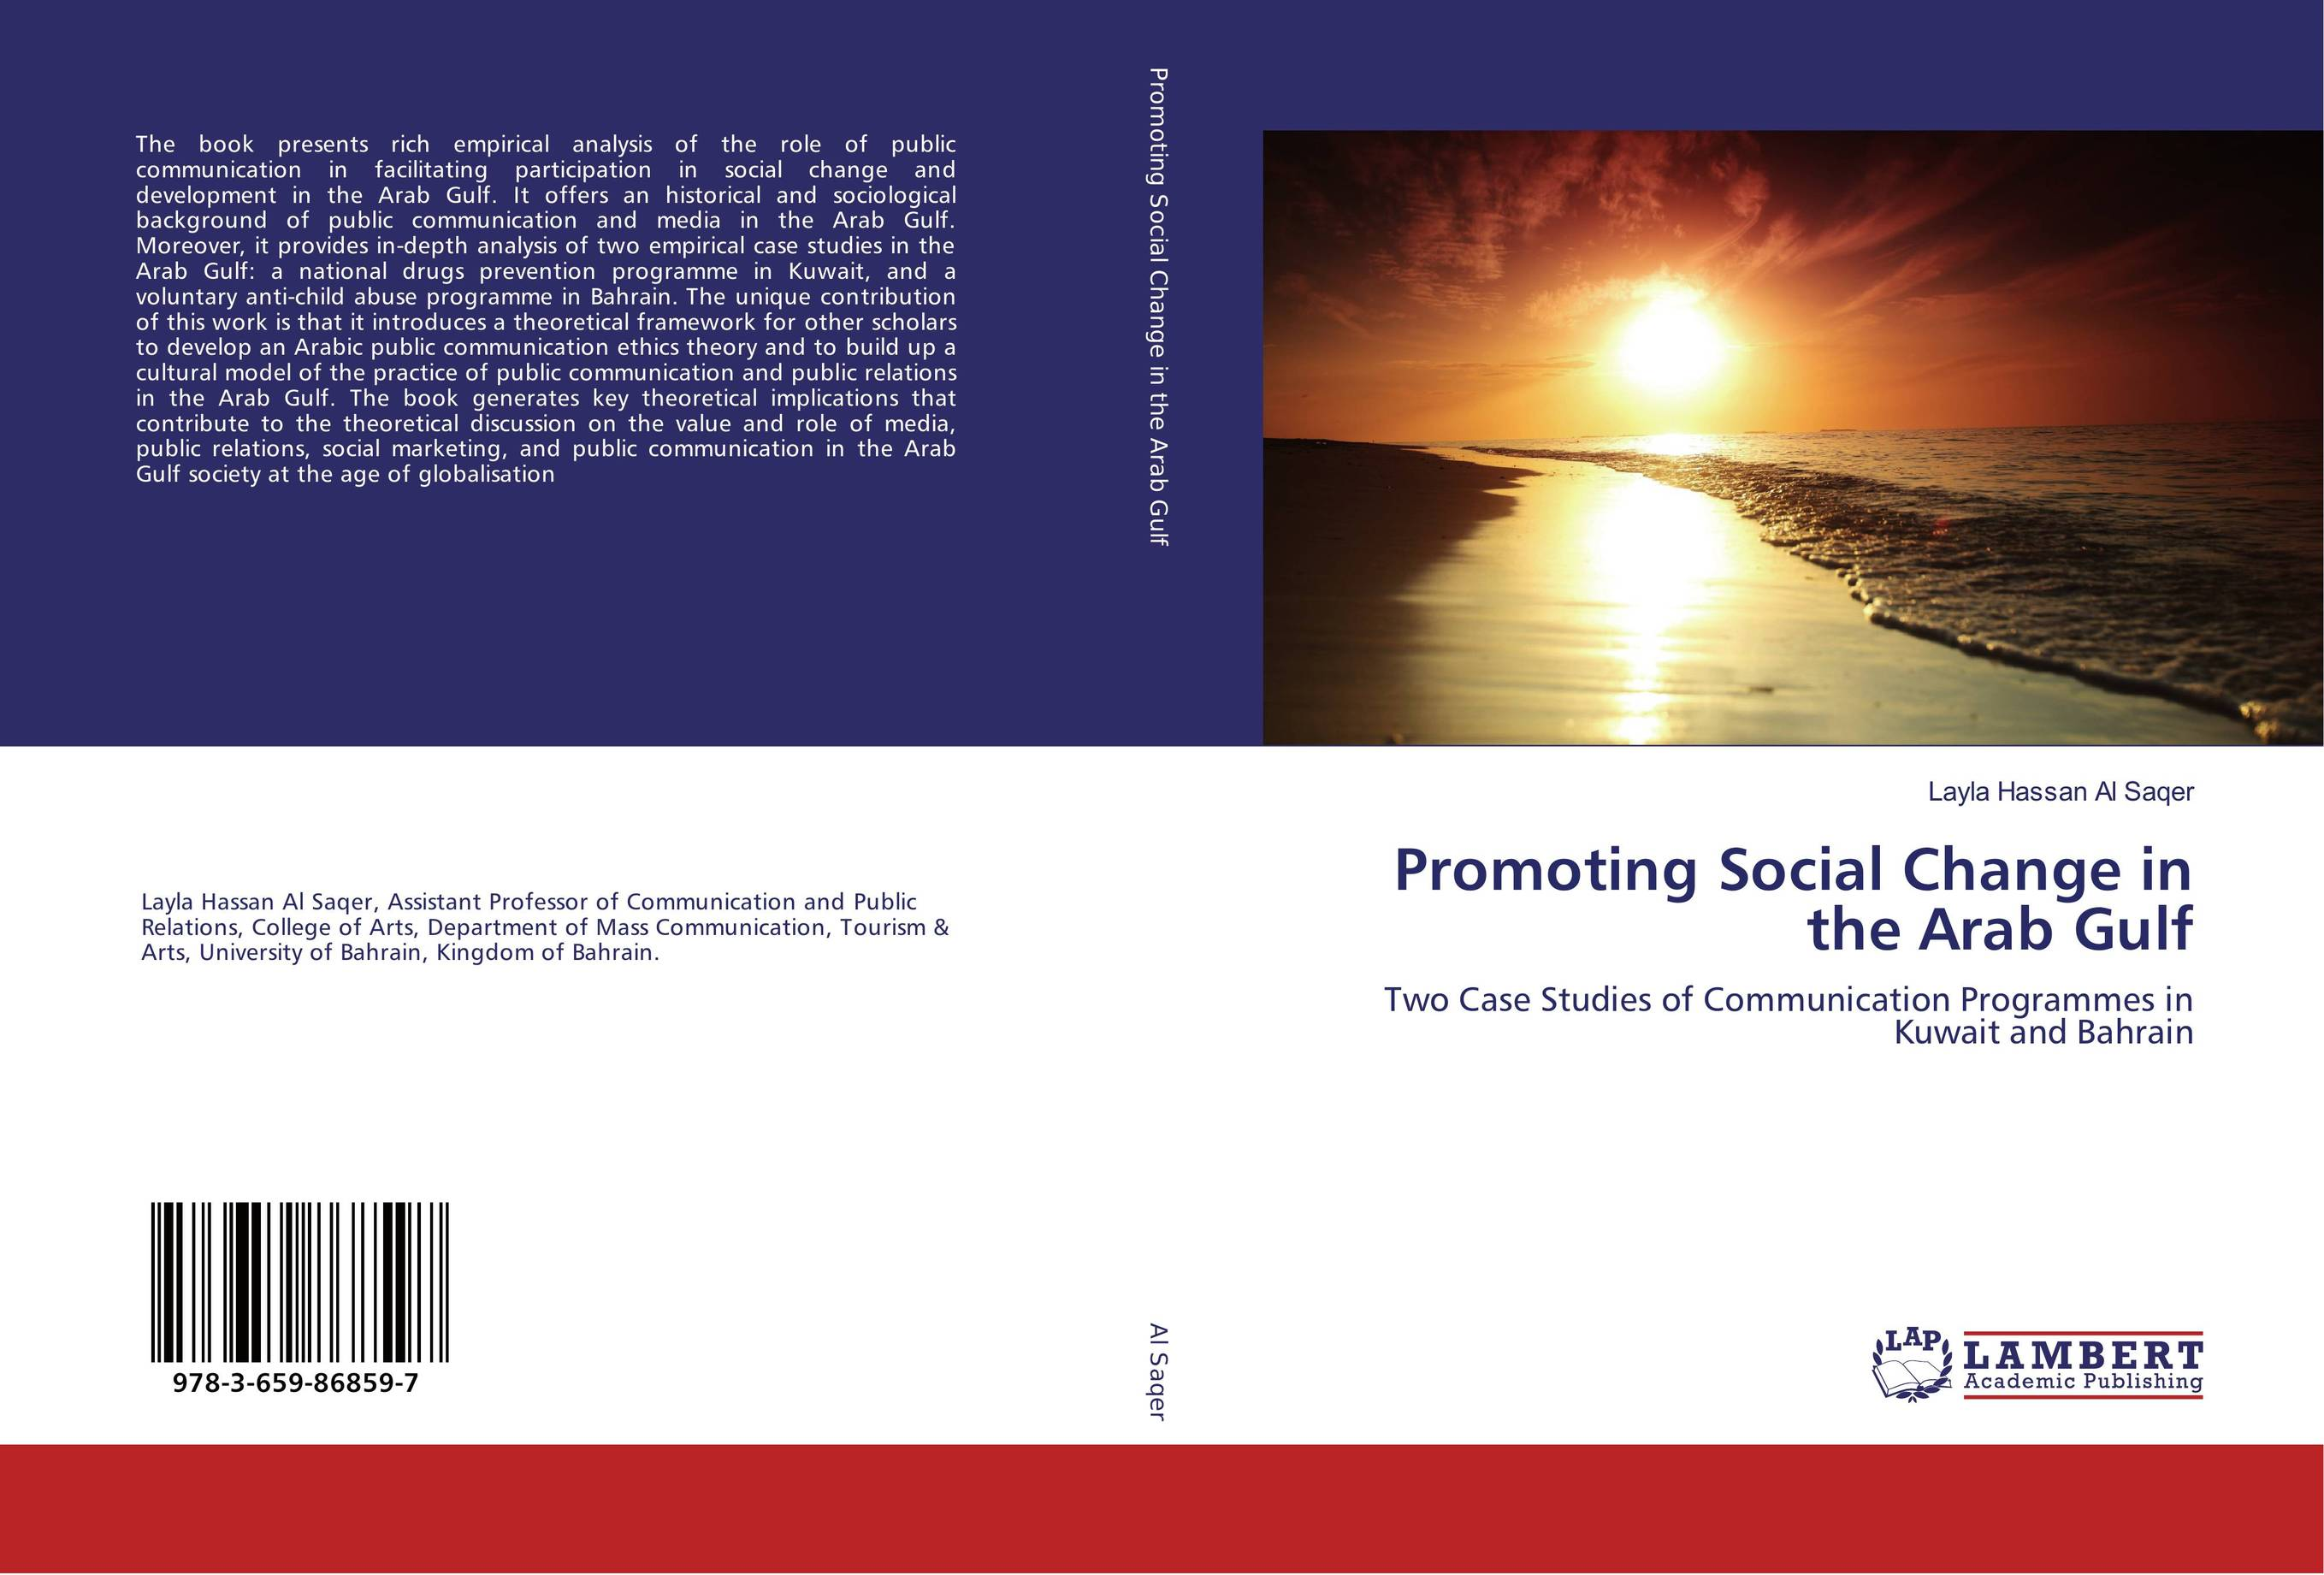 Promoting Social Change in the Arab Gulf